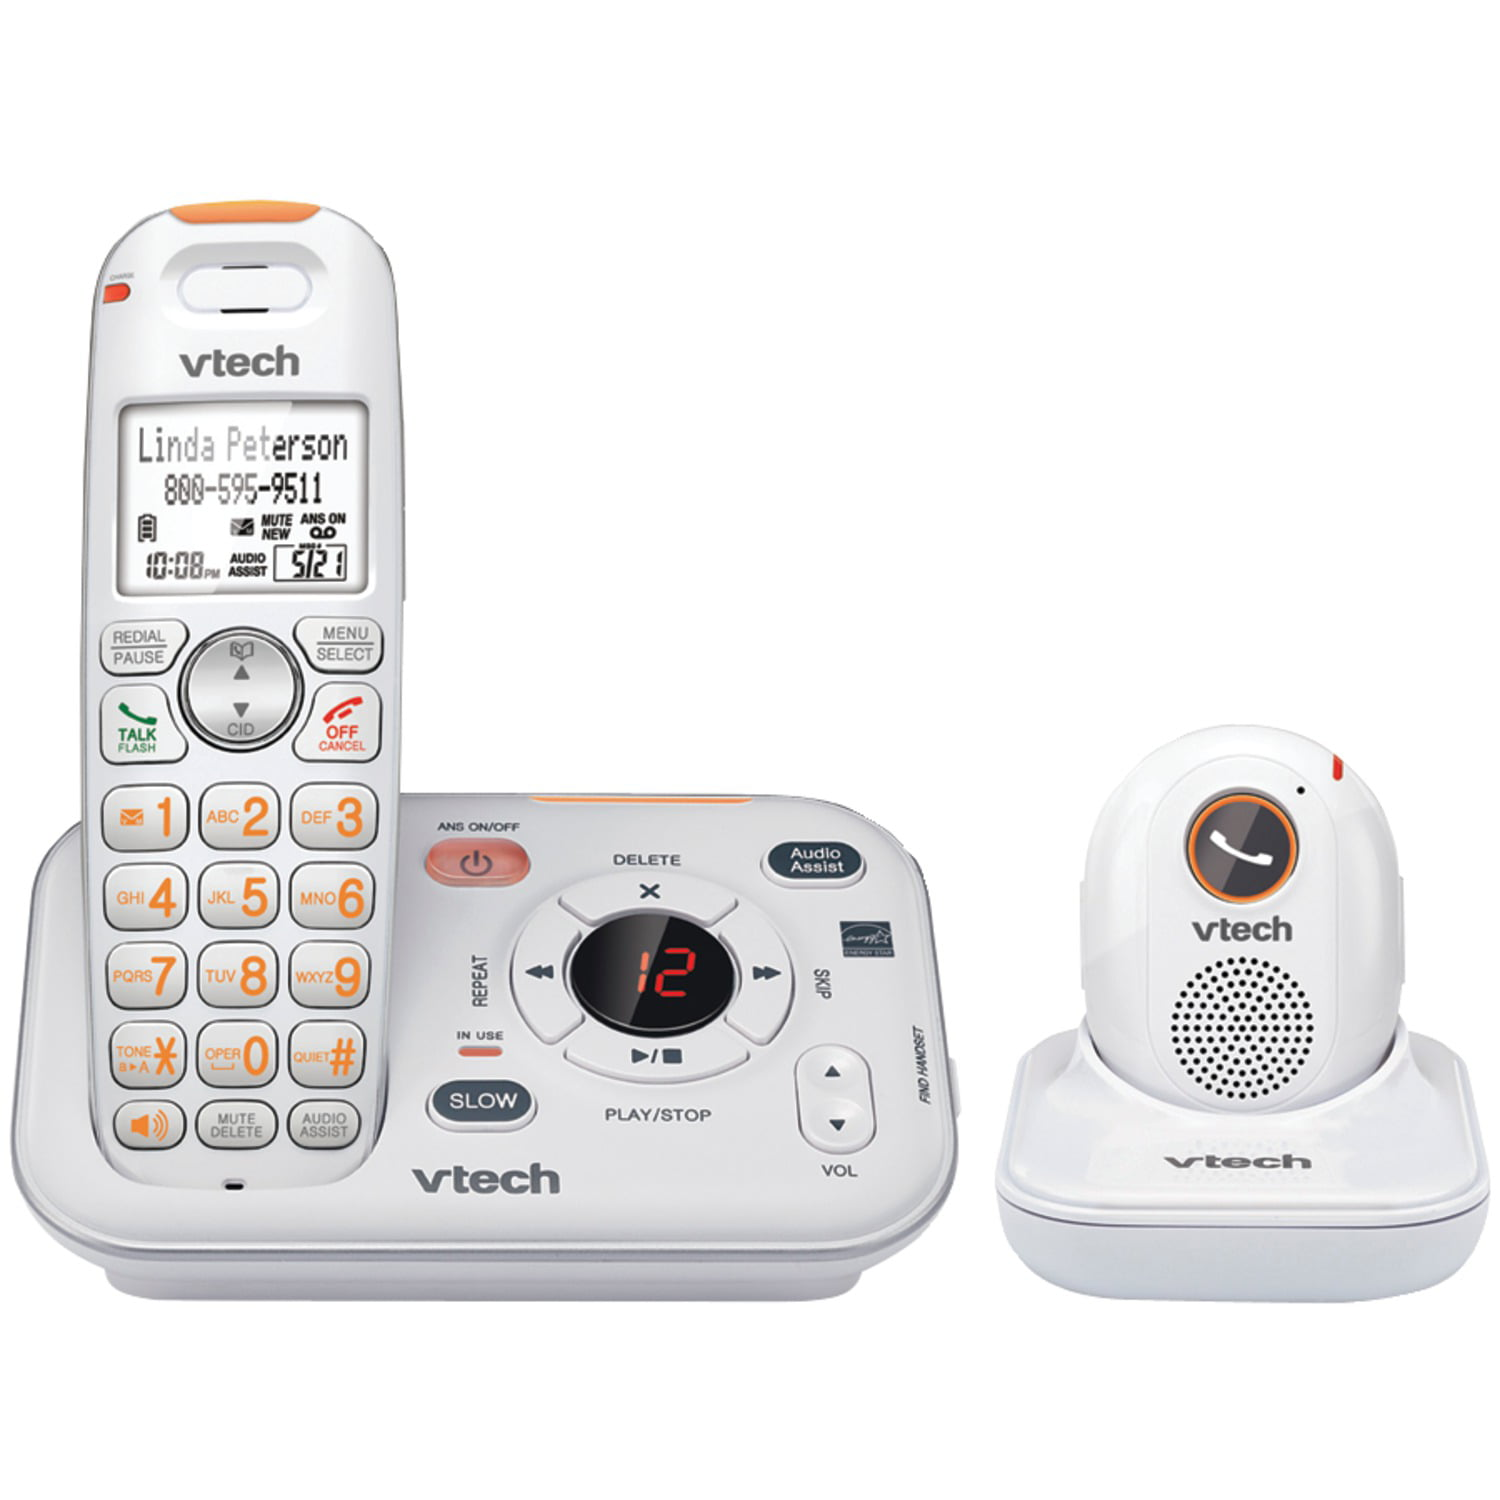 Vtech Sn6187 Careline Cordless Answering System With Portable